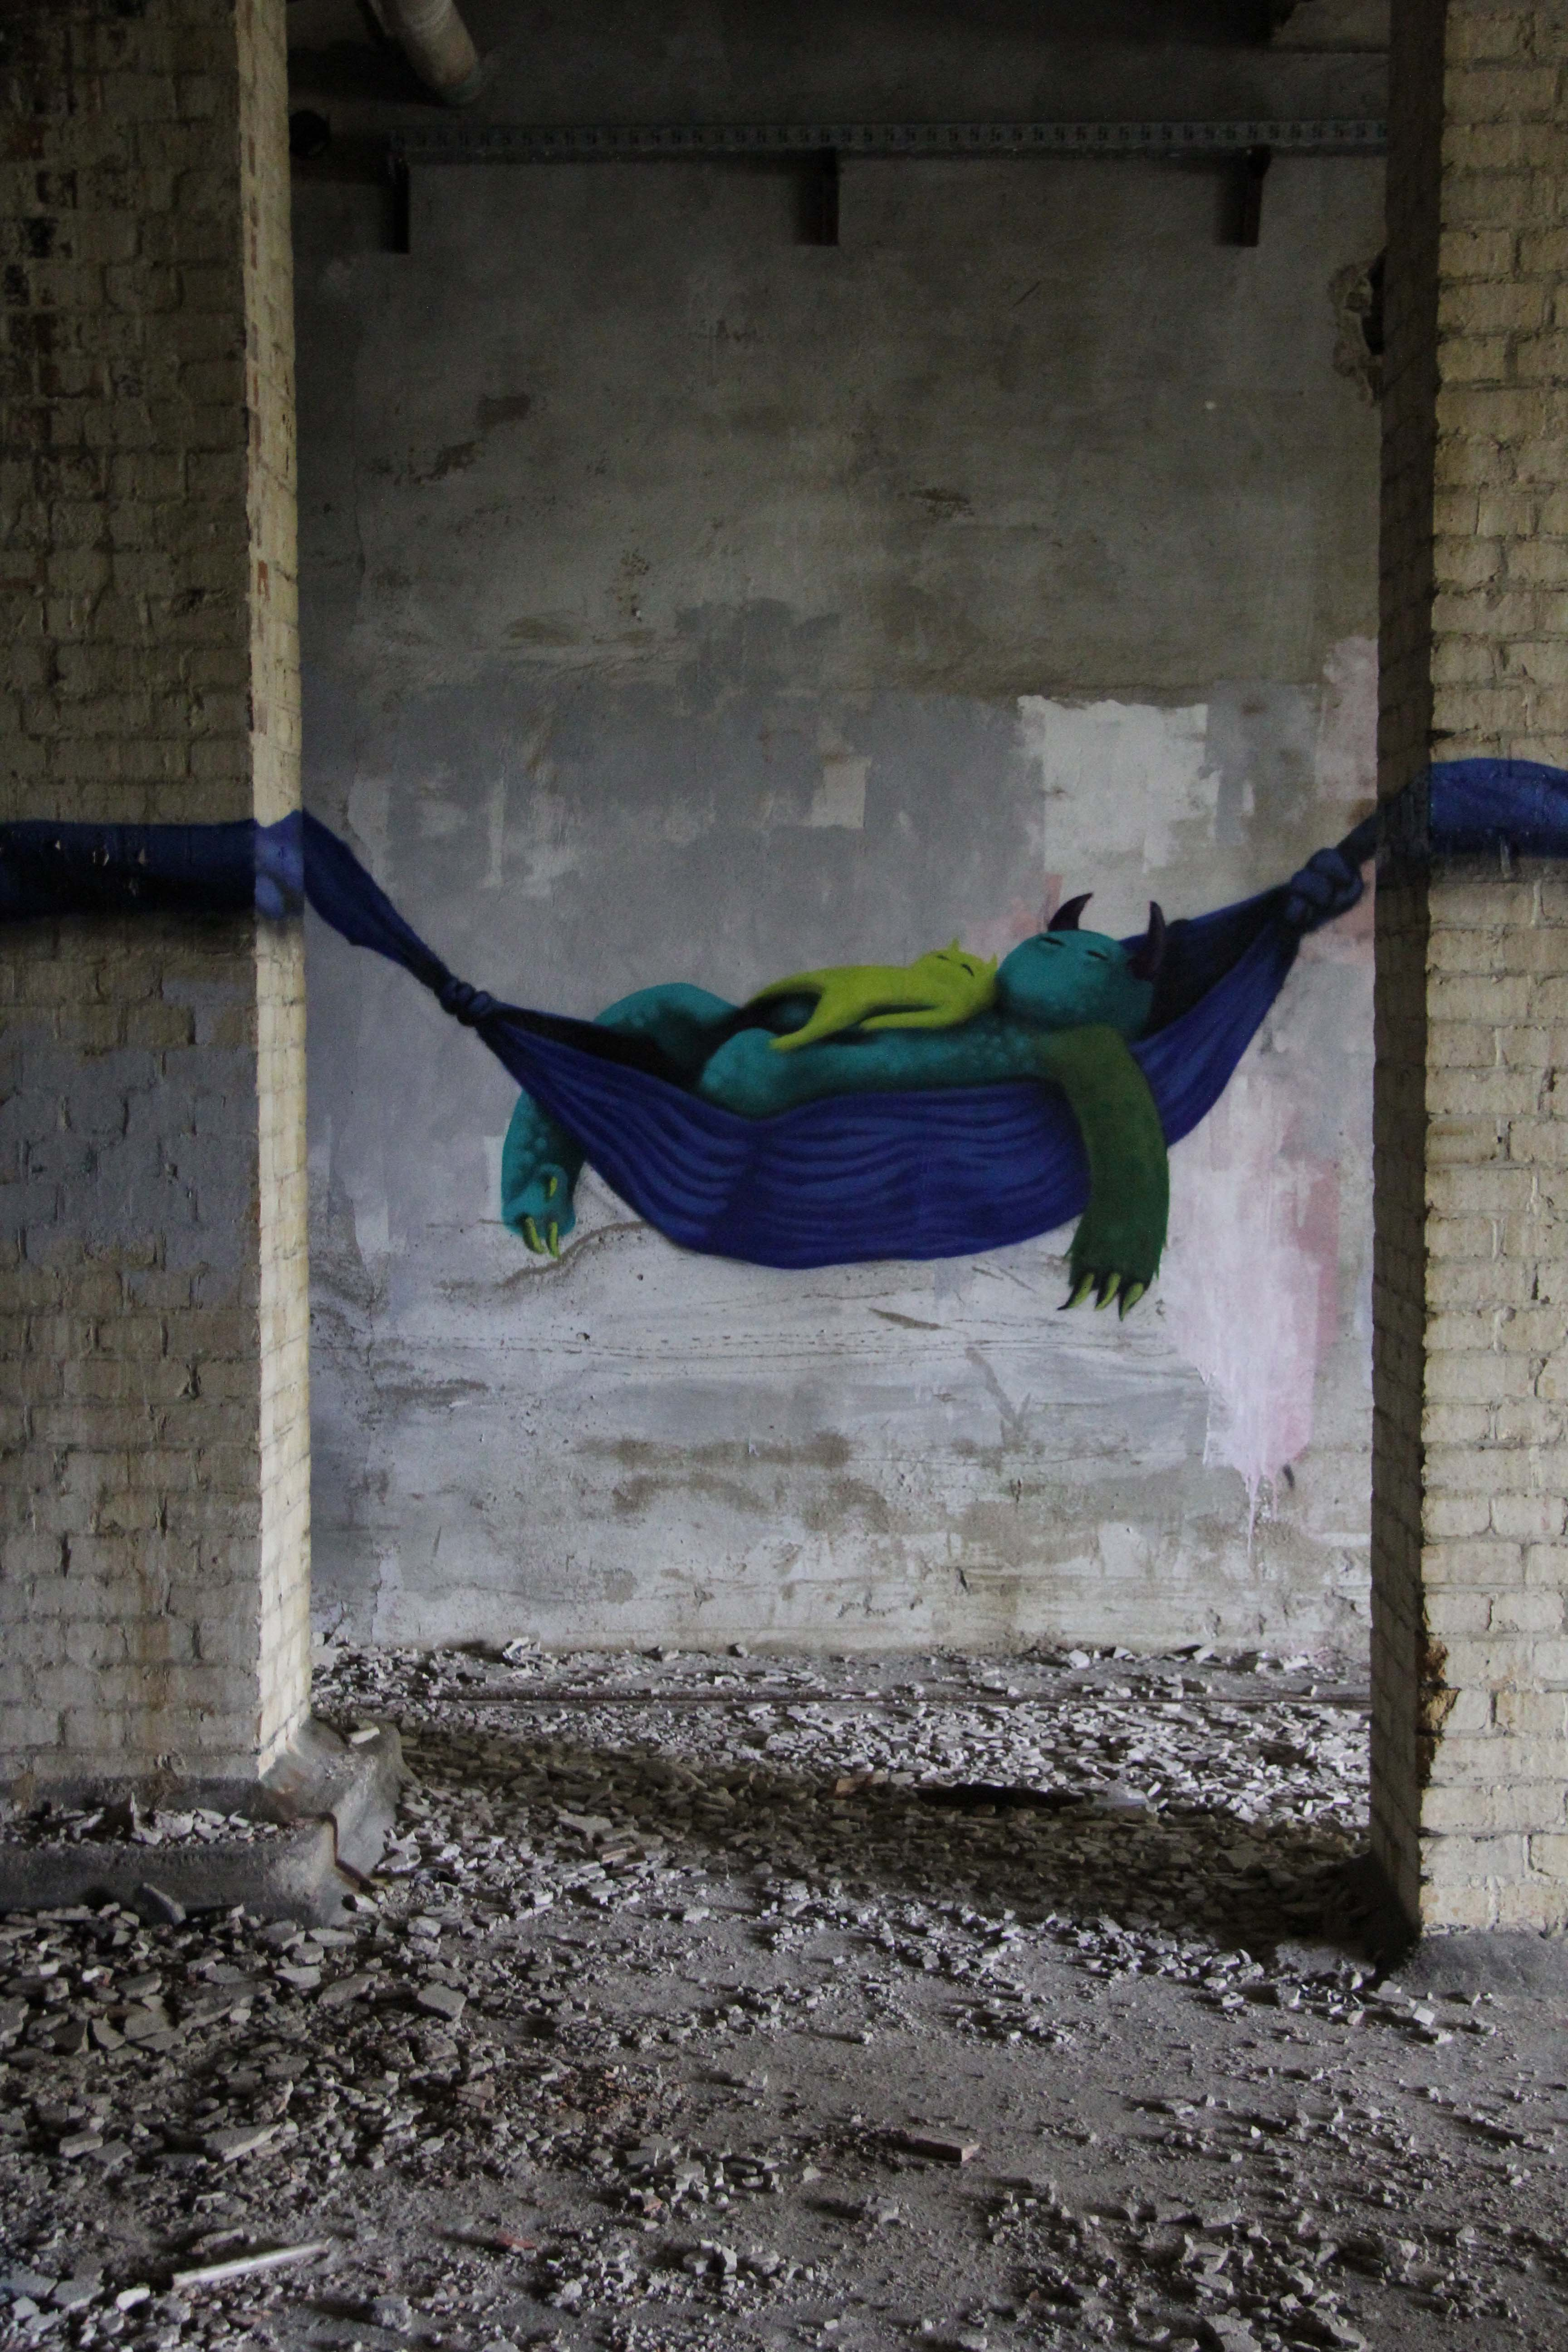 Hammock Time: Street Art by Kim Köster at Papierfabrik Wolfswinkel near Berlin